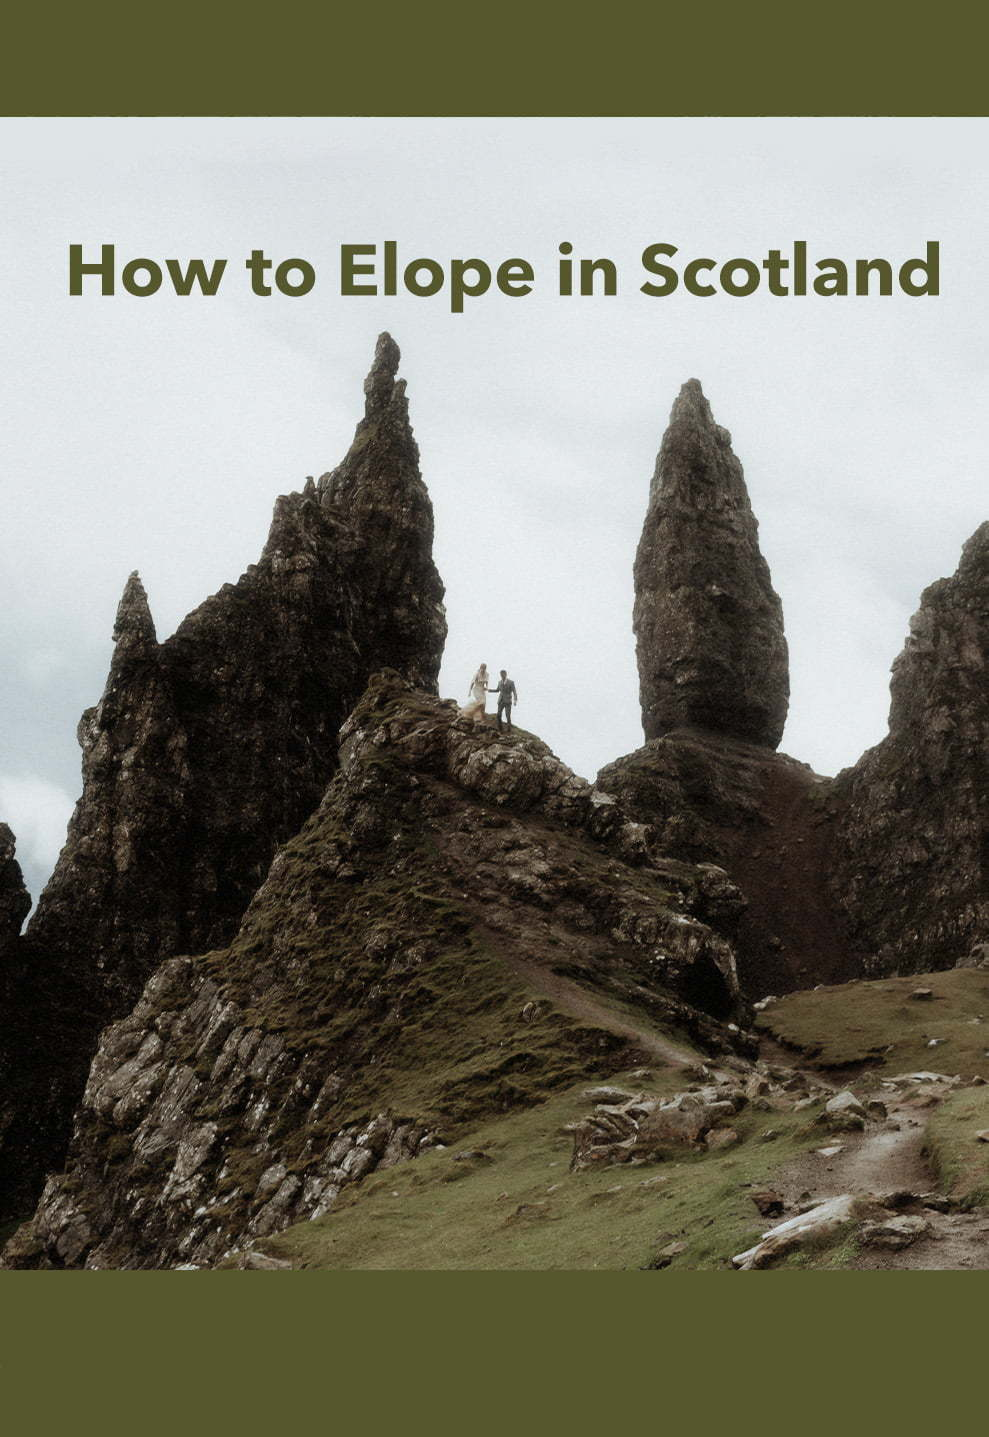 how to elope in scotland guide